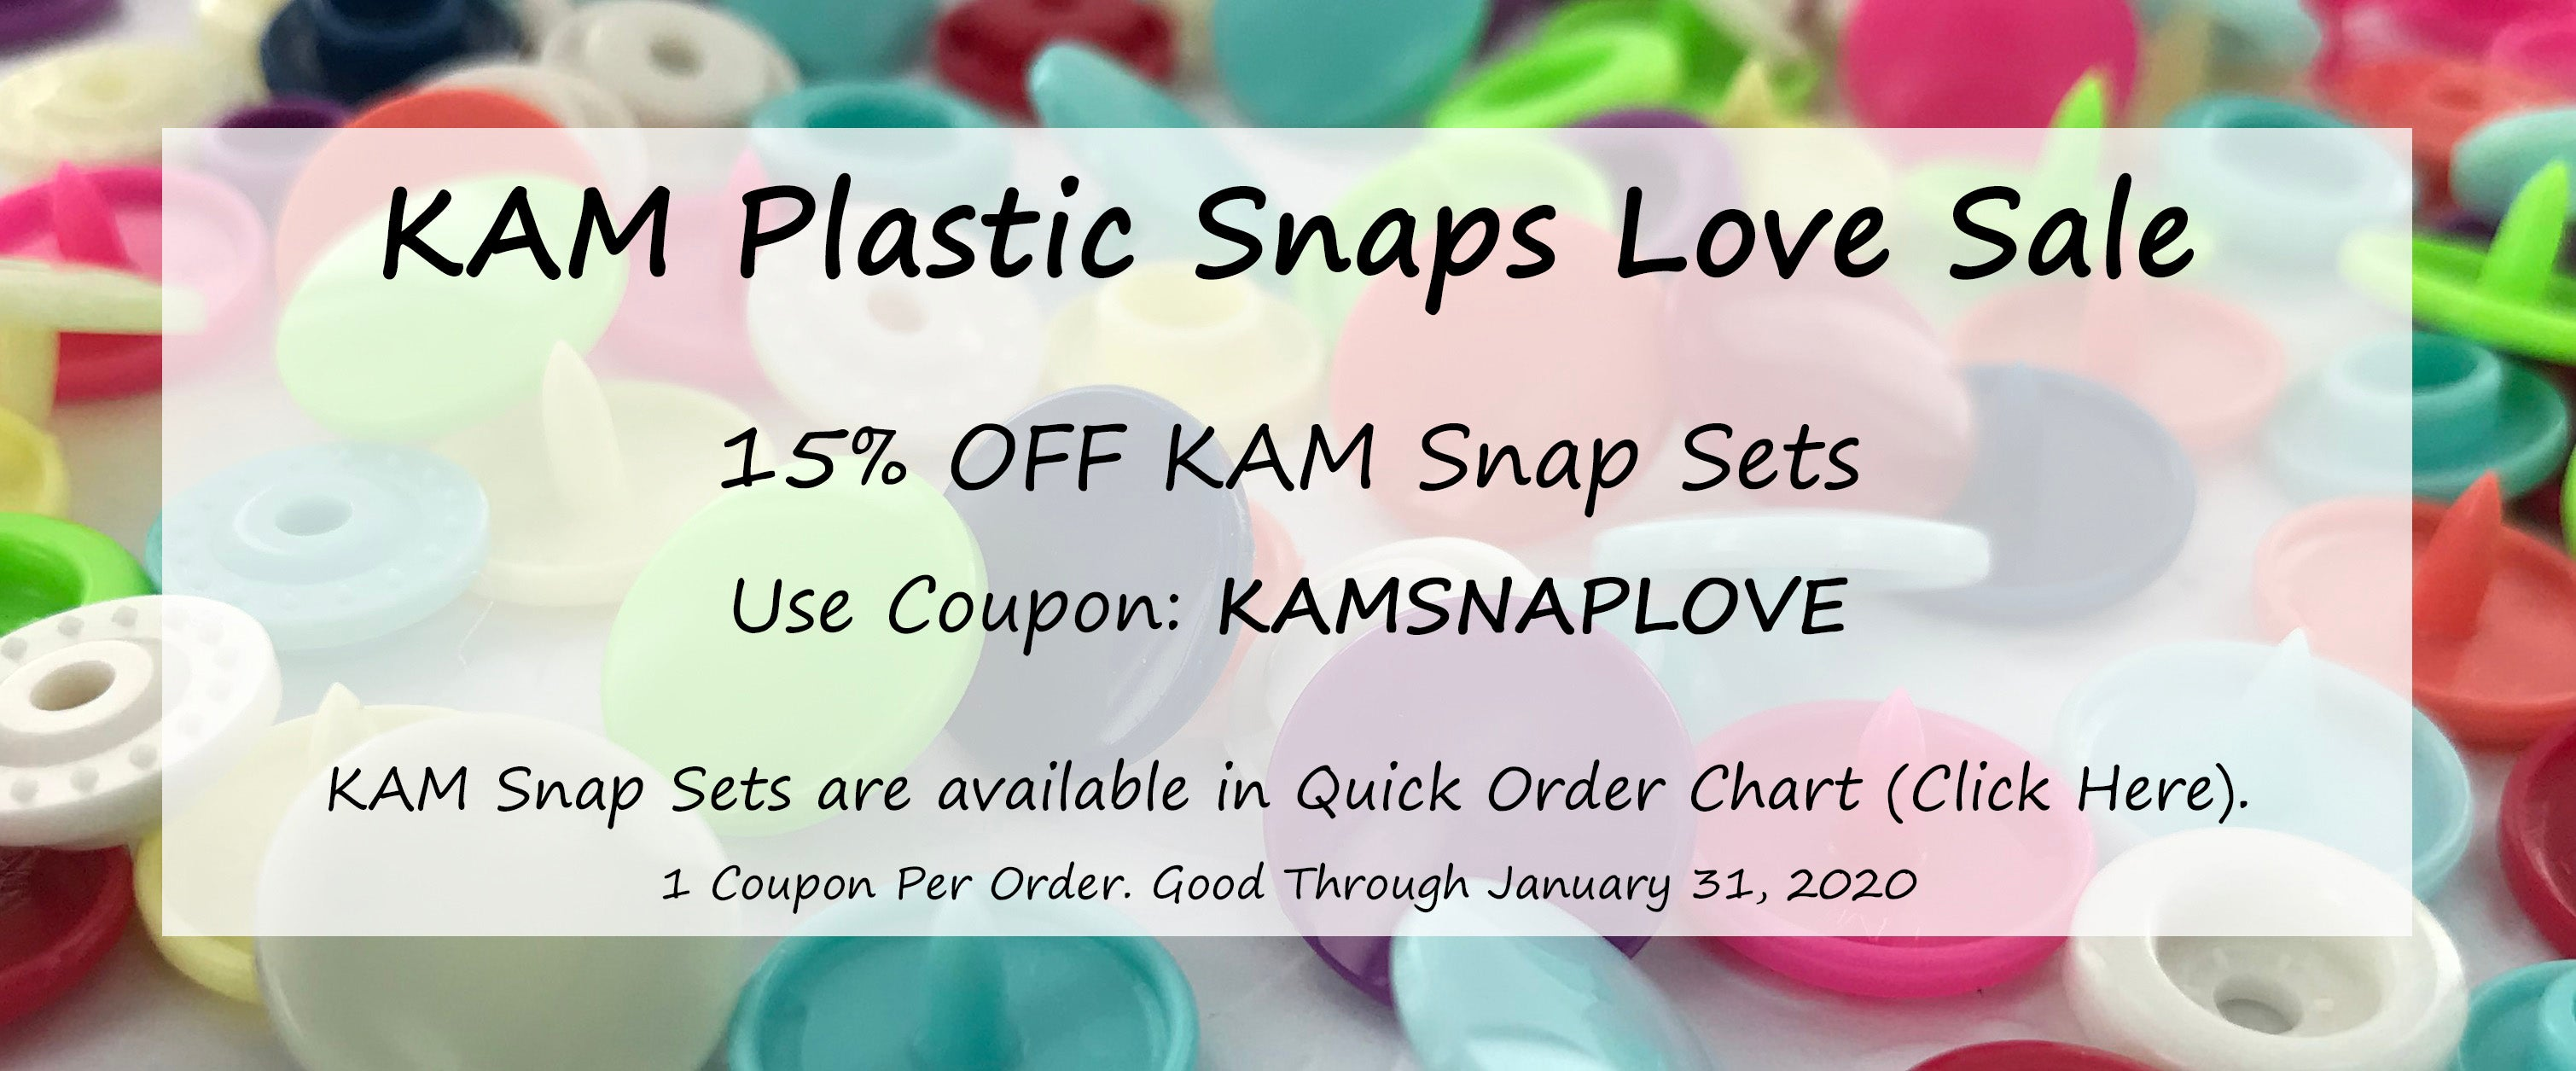 KAM Plastic Snaps Love Sale  15% OFF KAM Snap Sets   Use Coupon: KAMSNAPLOVE  KAM Snap Sets are available in Quick Order Chart (Click Here).   1 Coupon Per Order. Good Through January 31, 2020